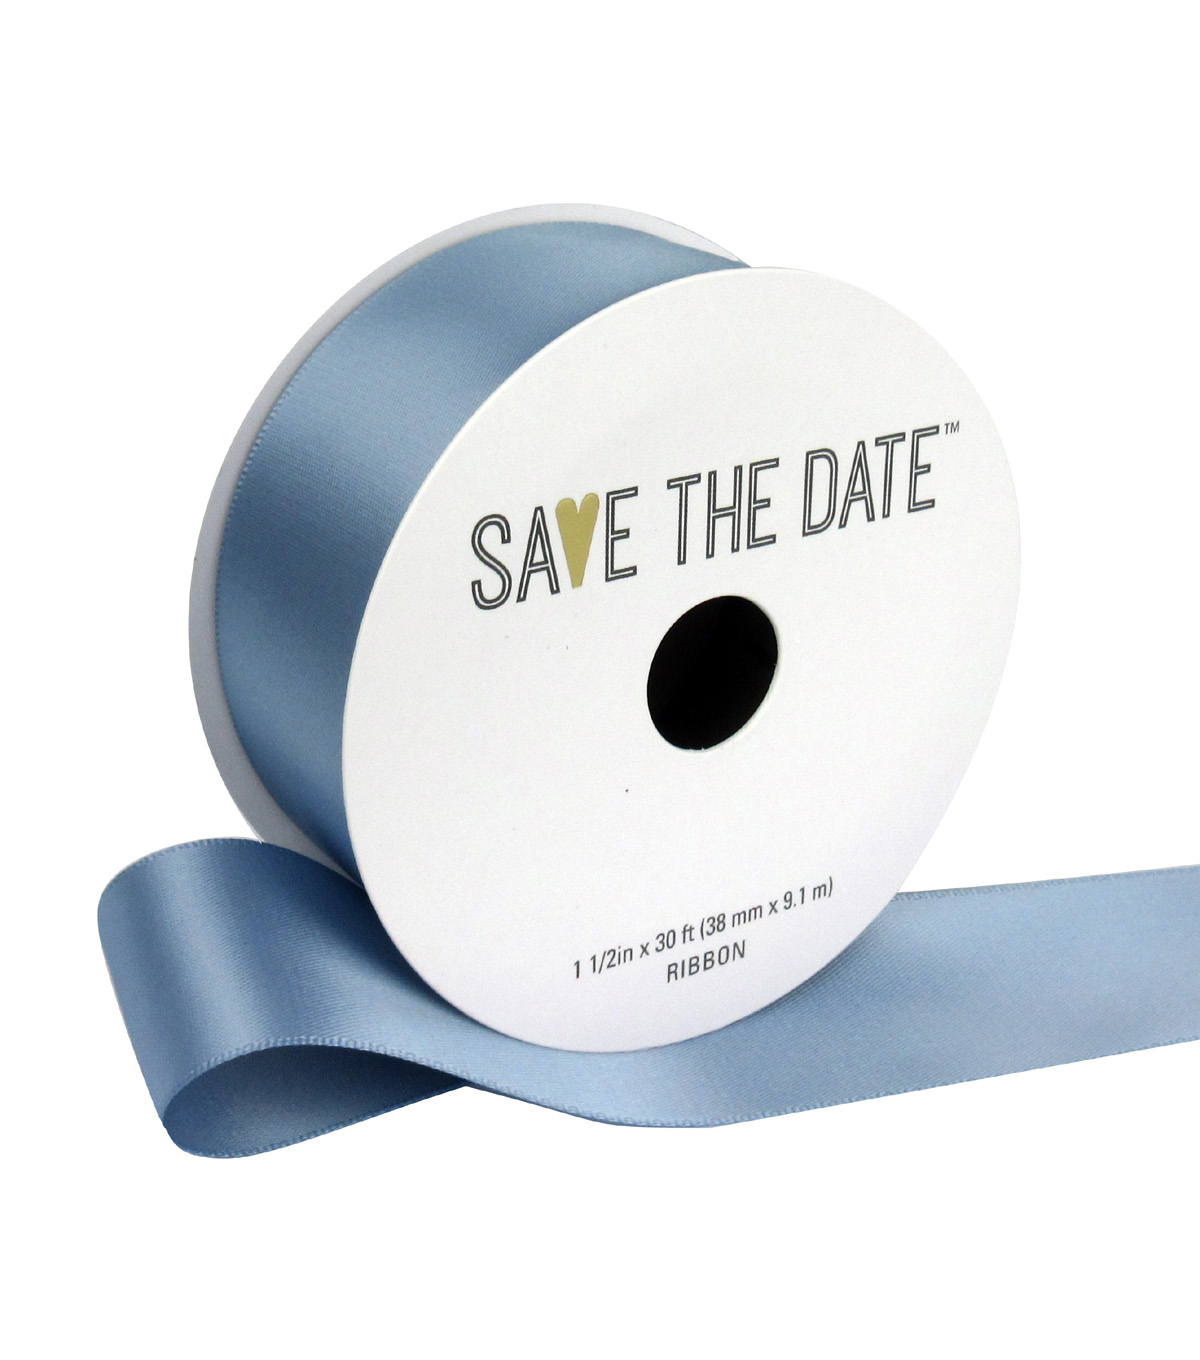 Save the Date 1.5\u0022 x 30ft Ribbon-Grey Blue Satin